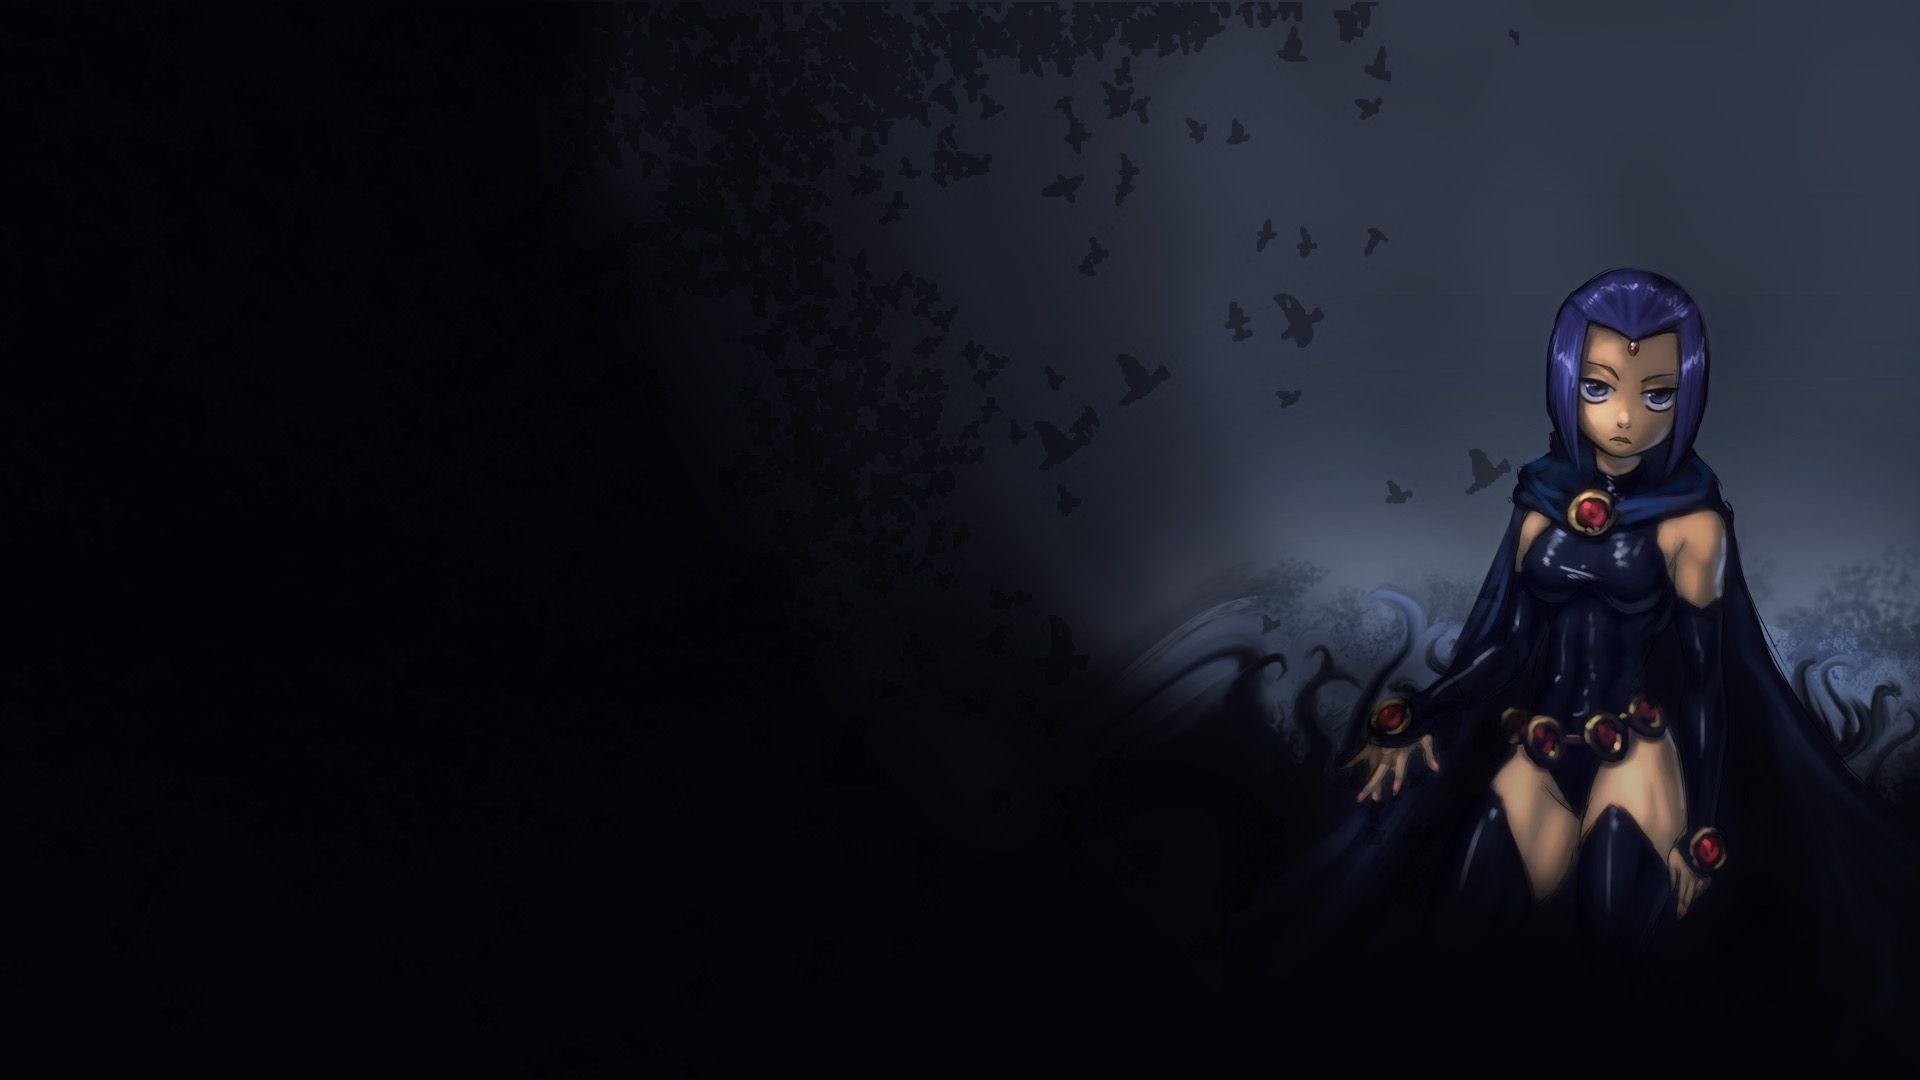 Raven Teen Titans Wallpapers 1920x1080